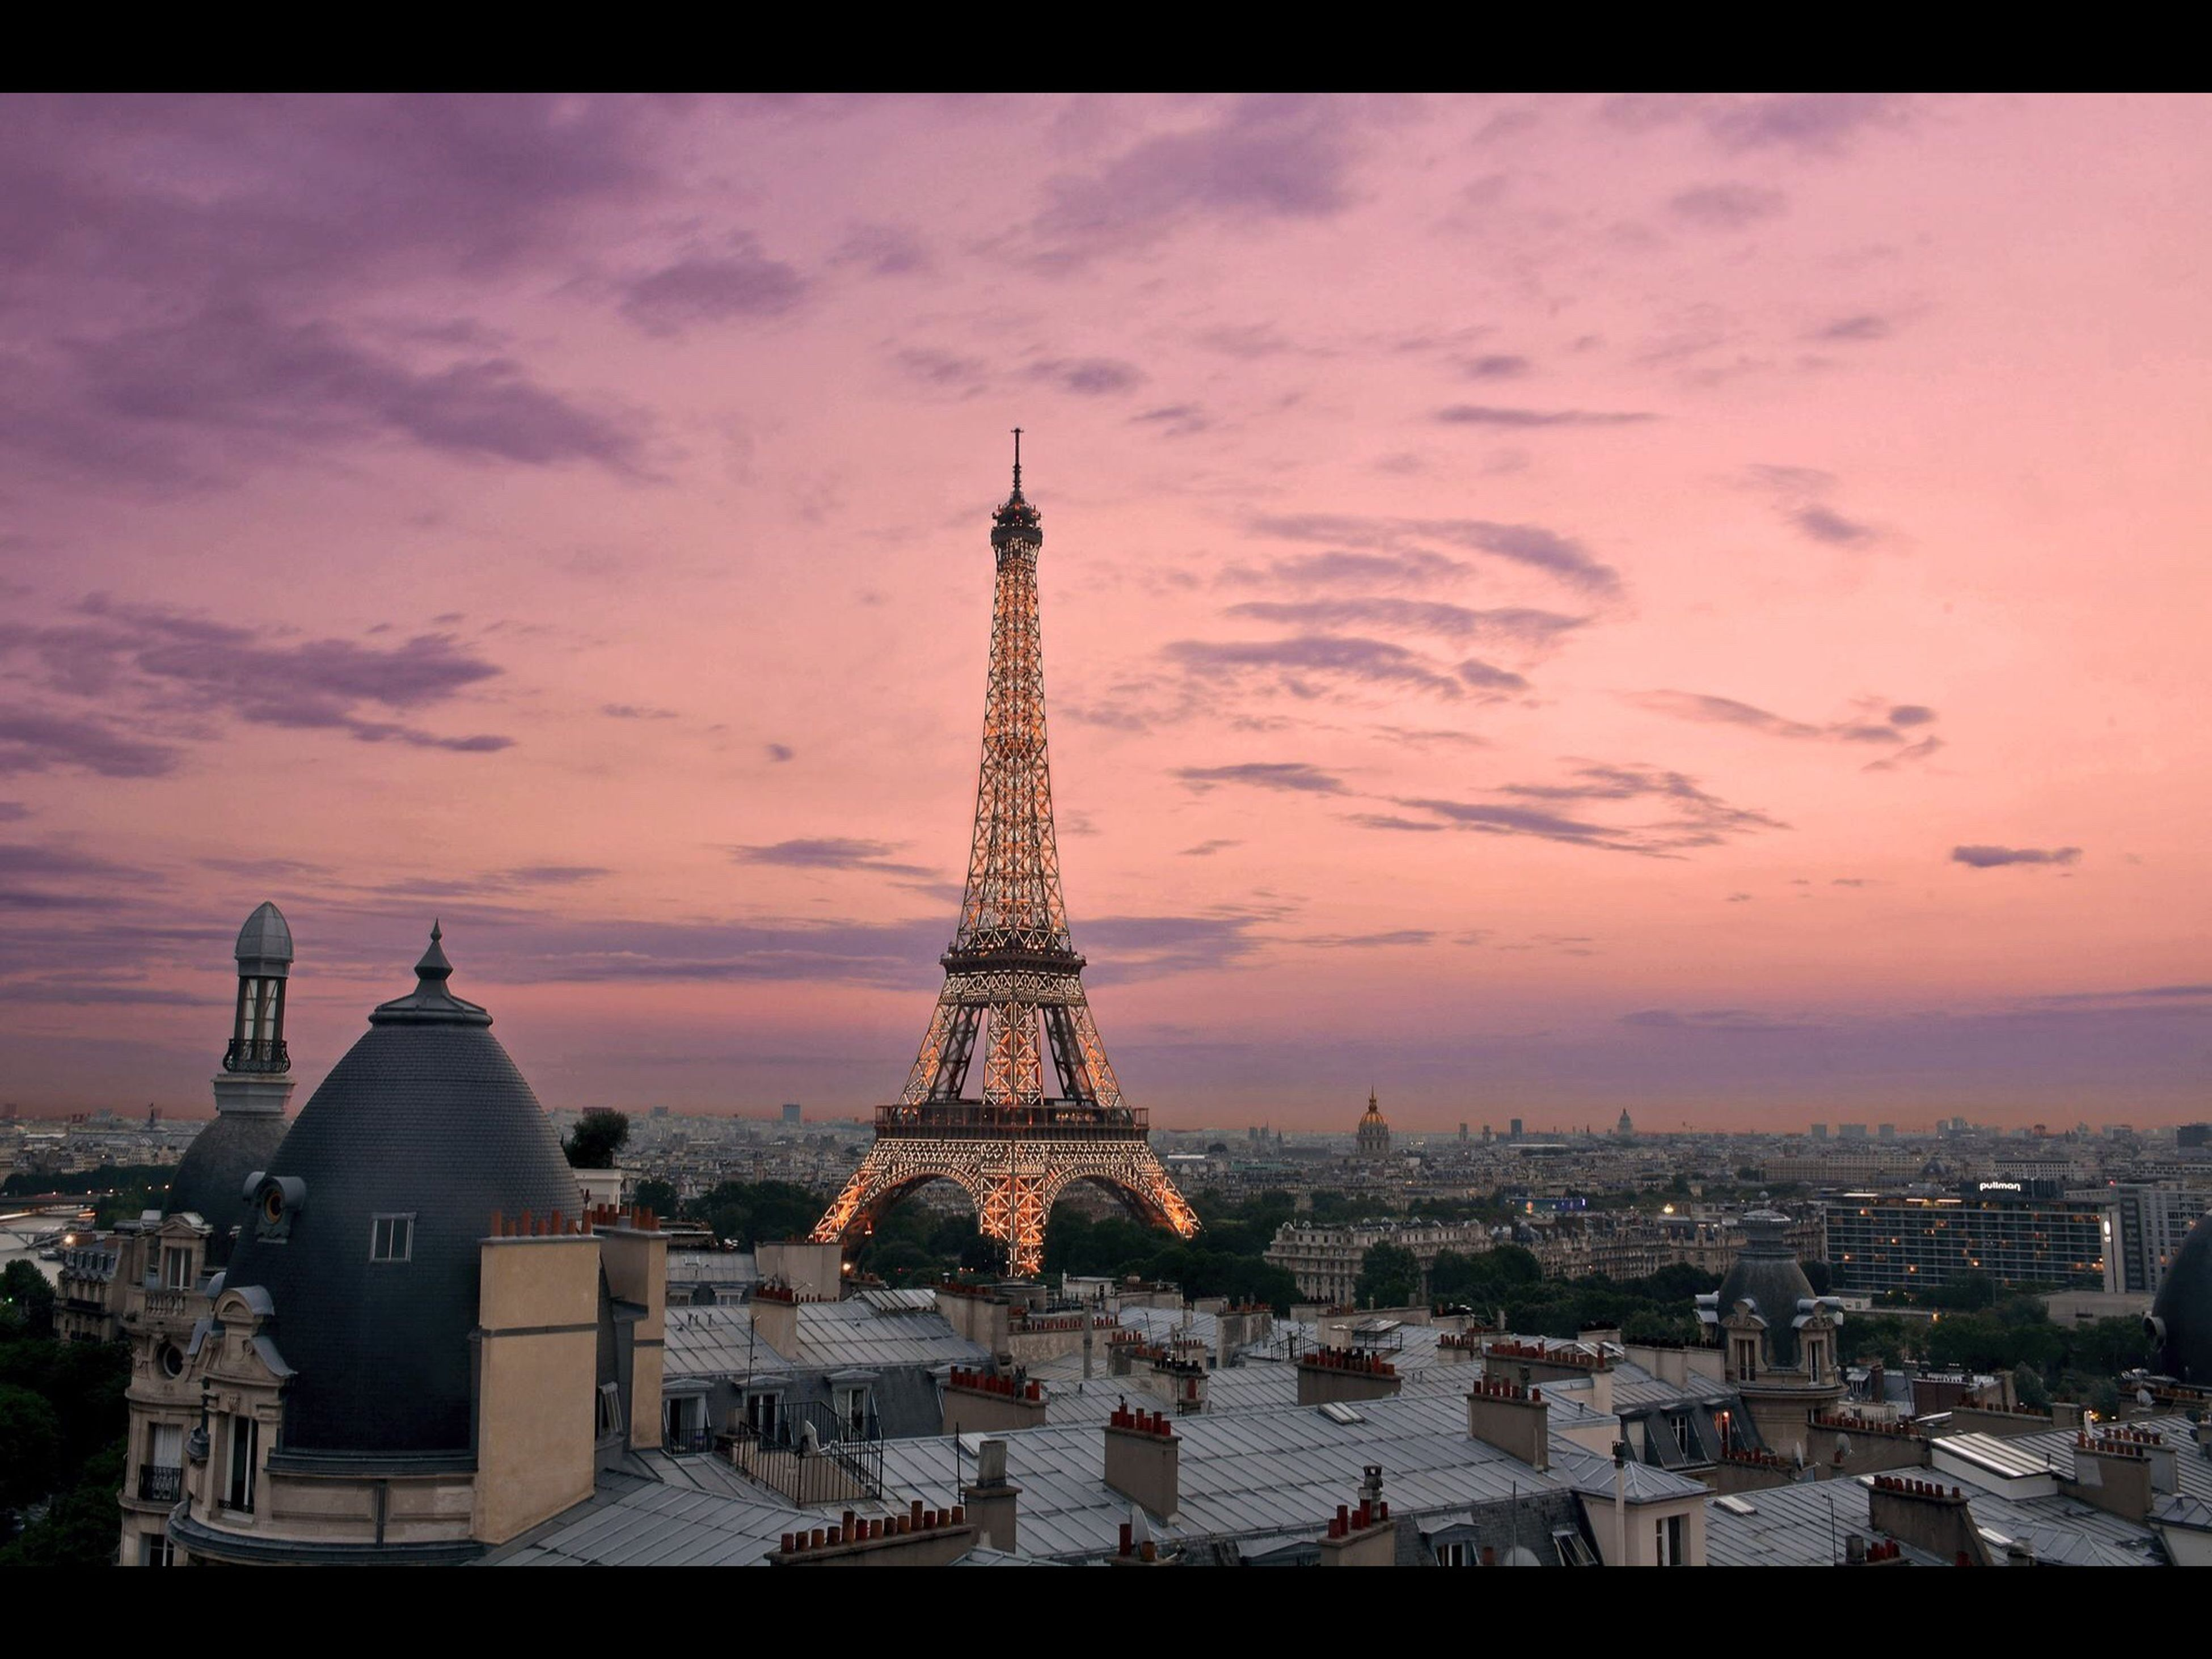 built structure, architecture, eiffel tower, tourism, travel destinations, city, tower, building exterior, international landmark, culture, famous place, capital cities, travel, tall - high, auto post production filter, cityscape, dusk, crowded, residential structure, residential building, sky, architectural feature, city life, spire, cloud - sky, cloud, town, residential district, no people, outdoors, arch